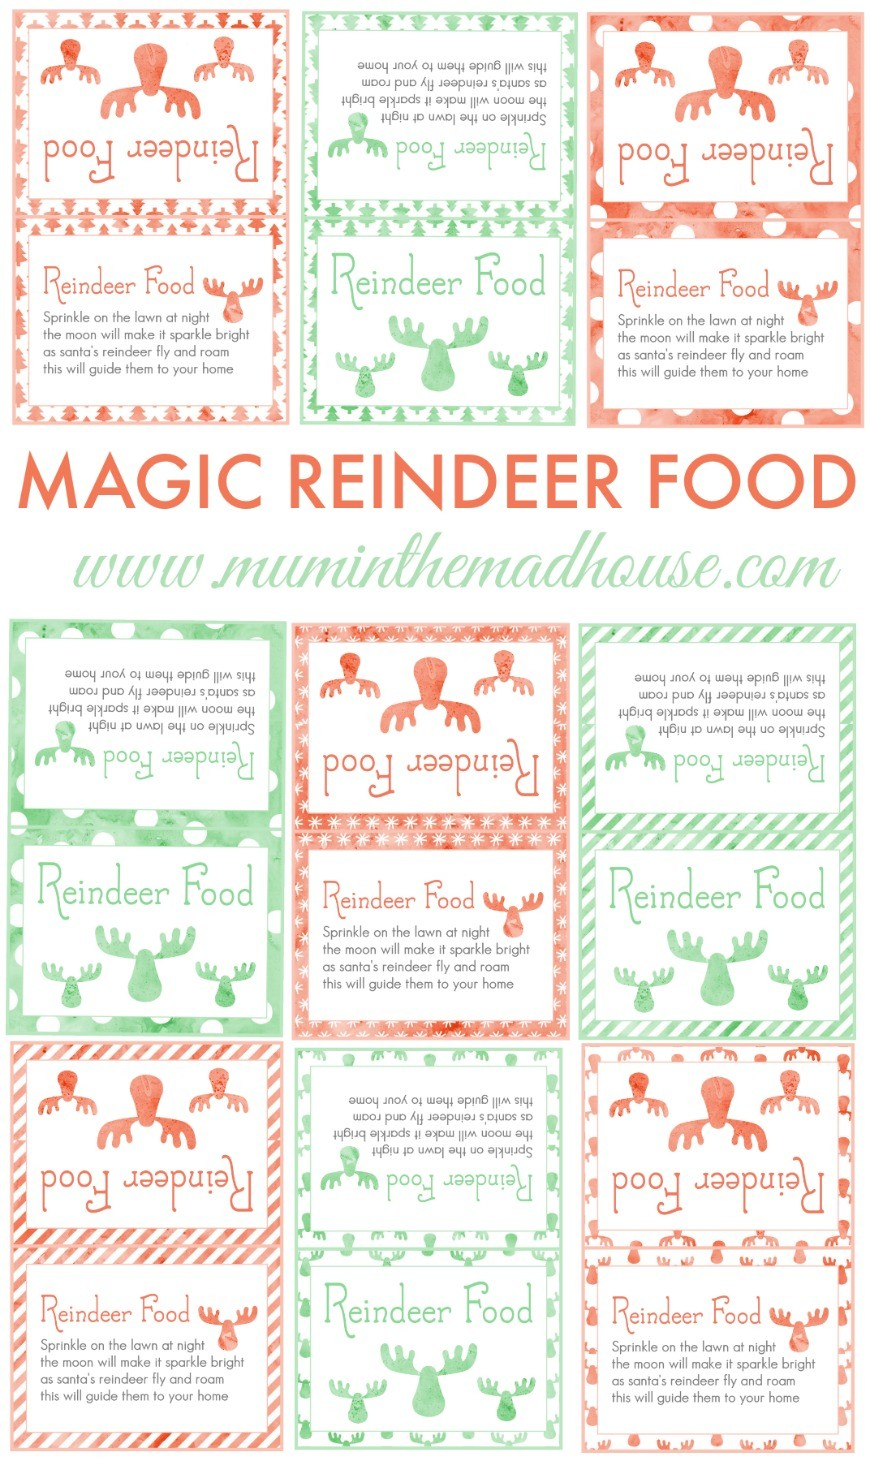 photograph about Reindeer Food Labels Printable named Do-it-yourself Magic Reindeer Foodstuff - Mum In just The Madhouse